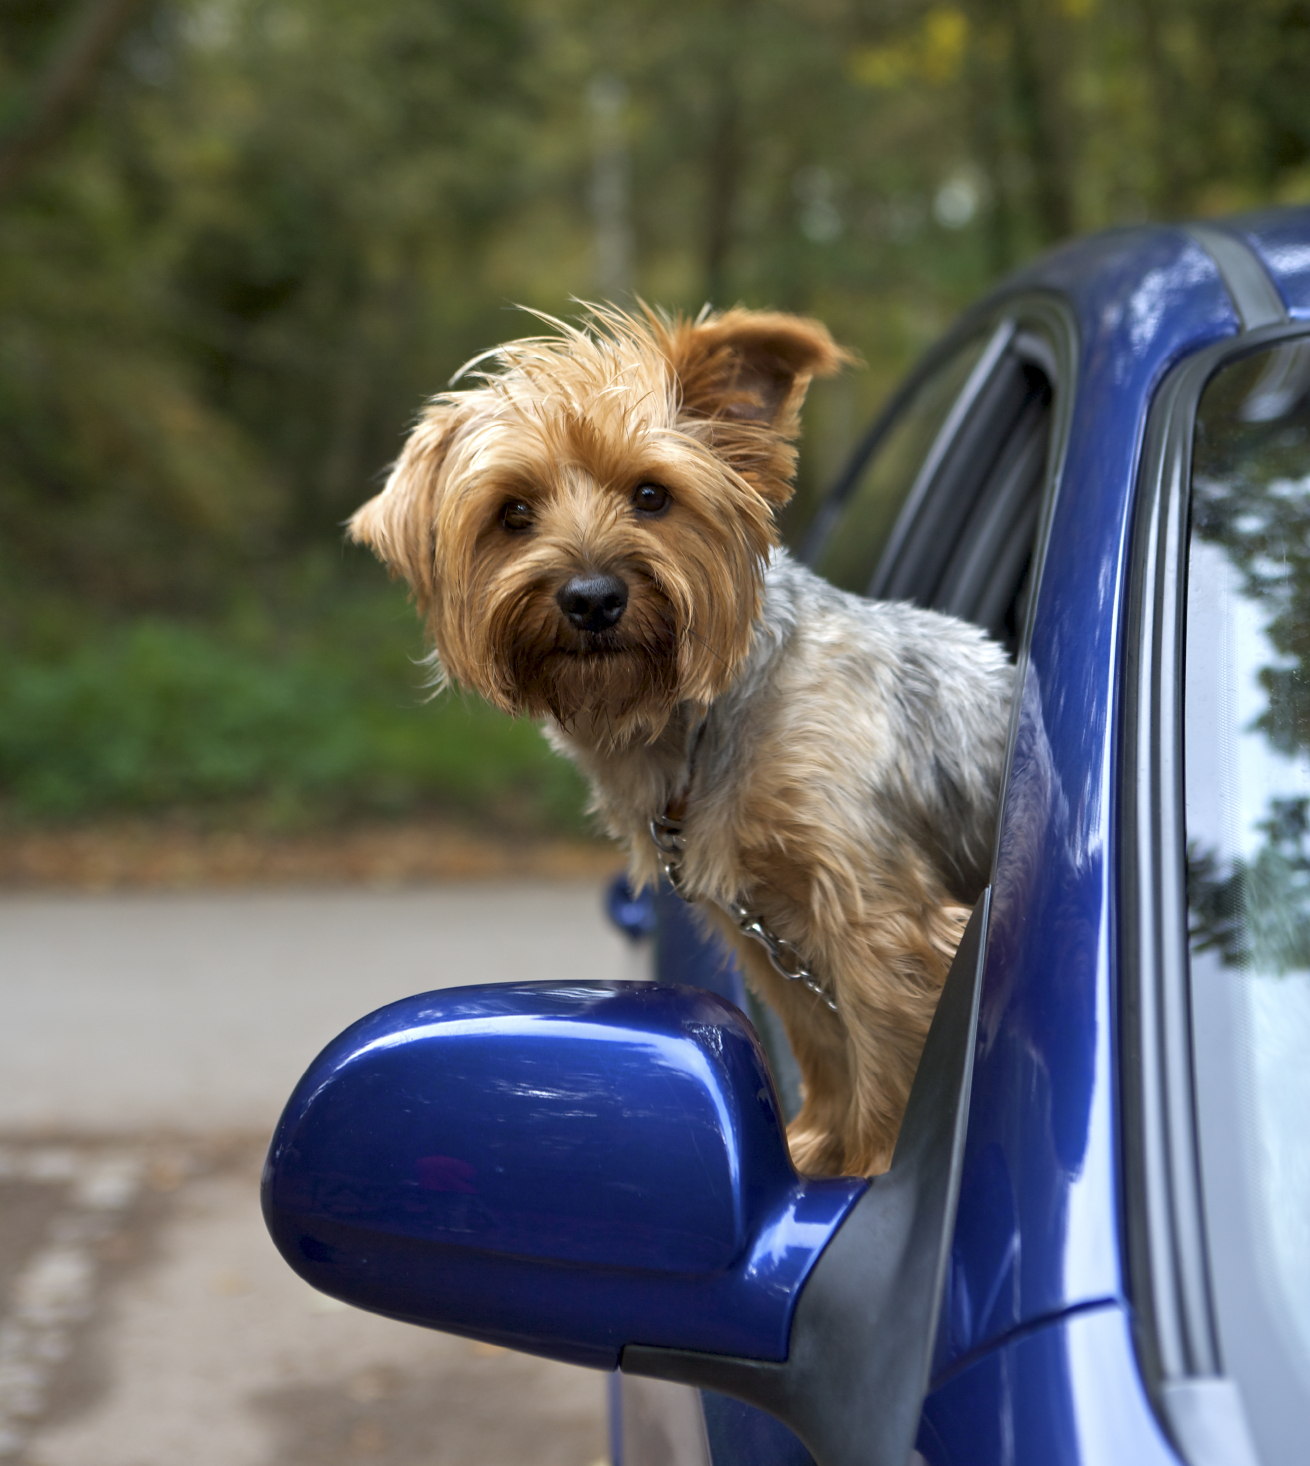 Dog in blue car